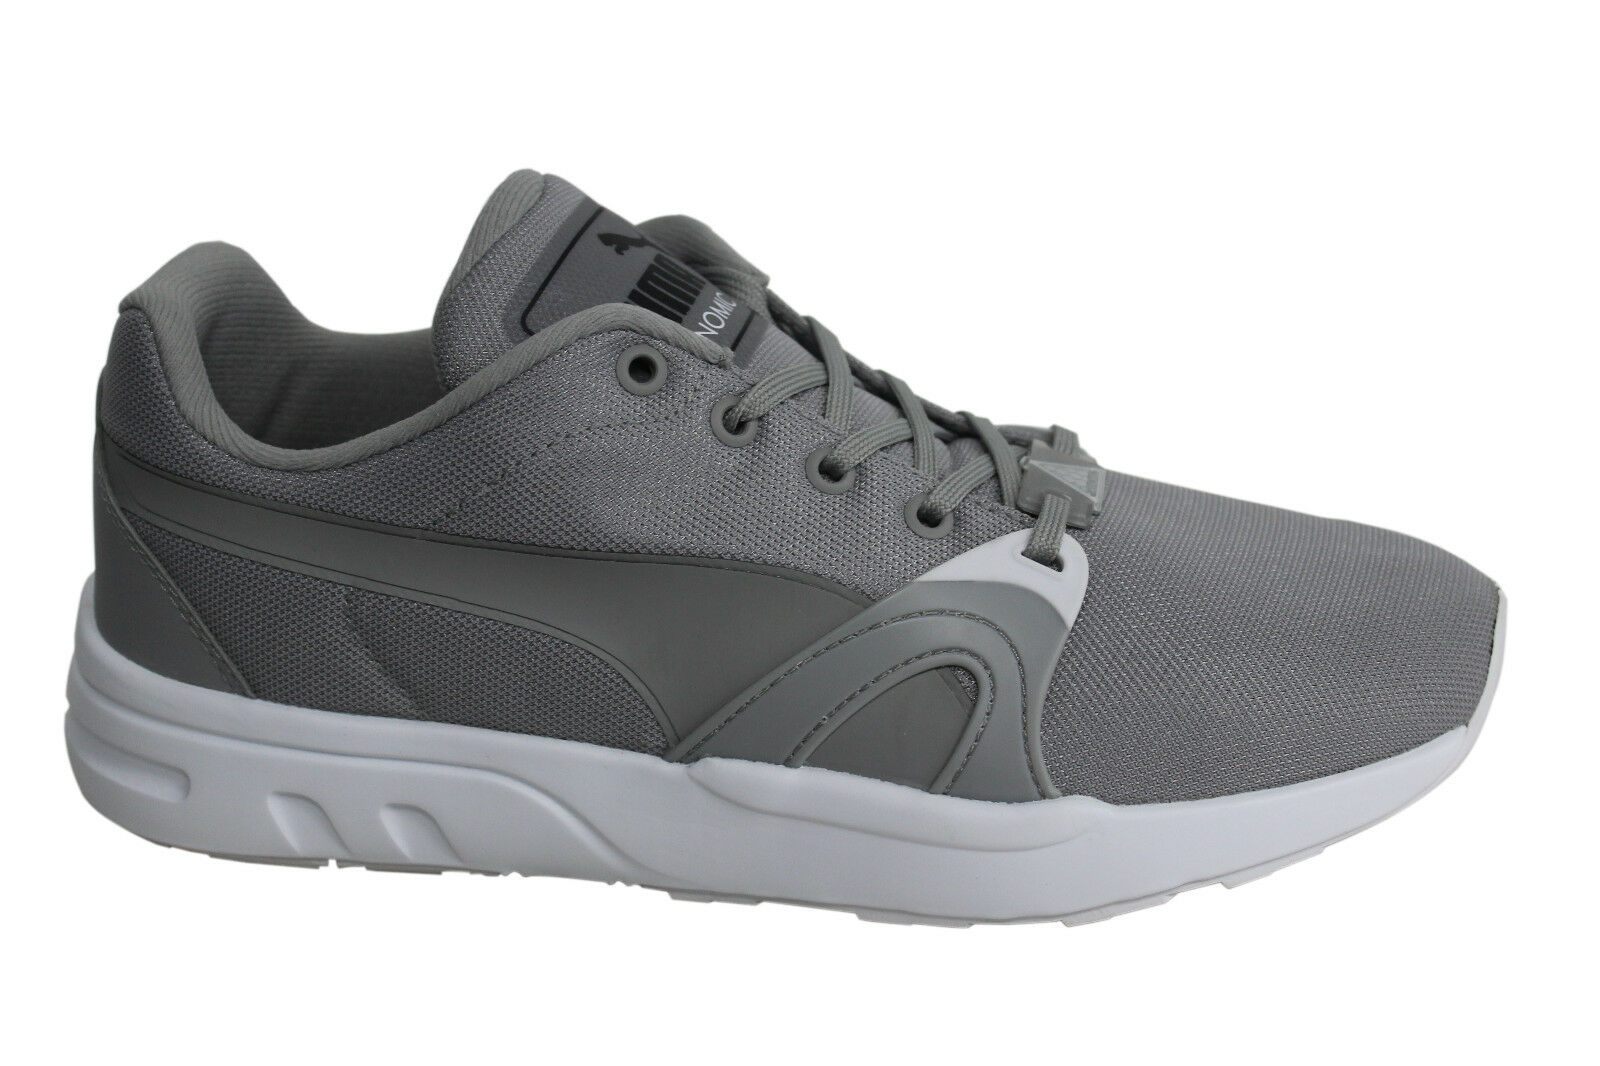 Puma Trinomic XT S Mens Lace Up Grey Trainers Running Shoes 359135 02 D86 Cheap women's shoes women's shoes